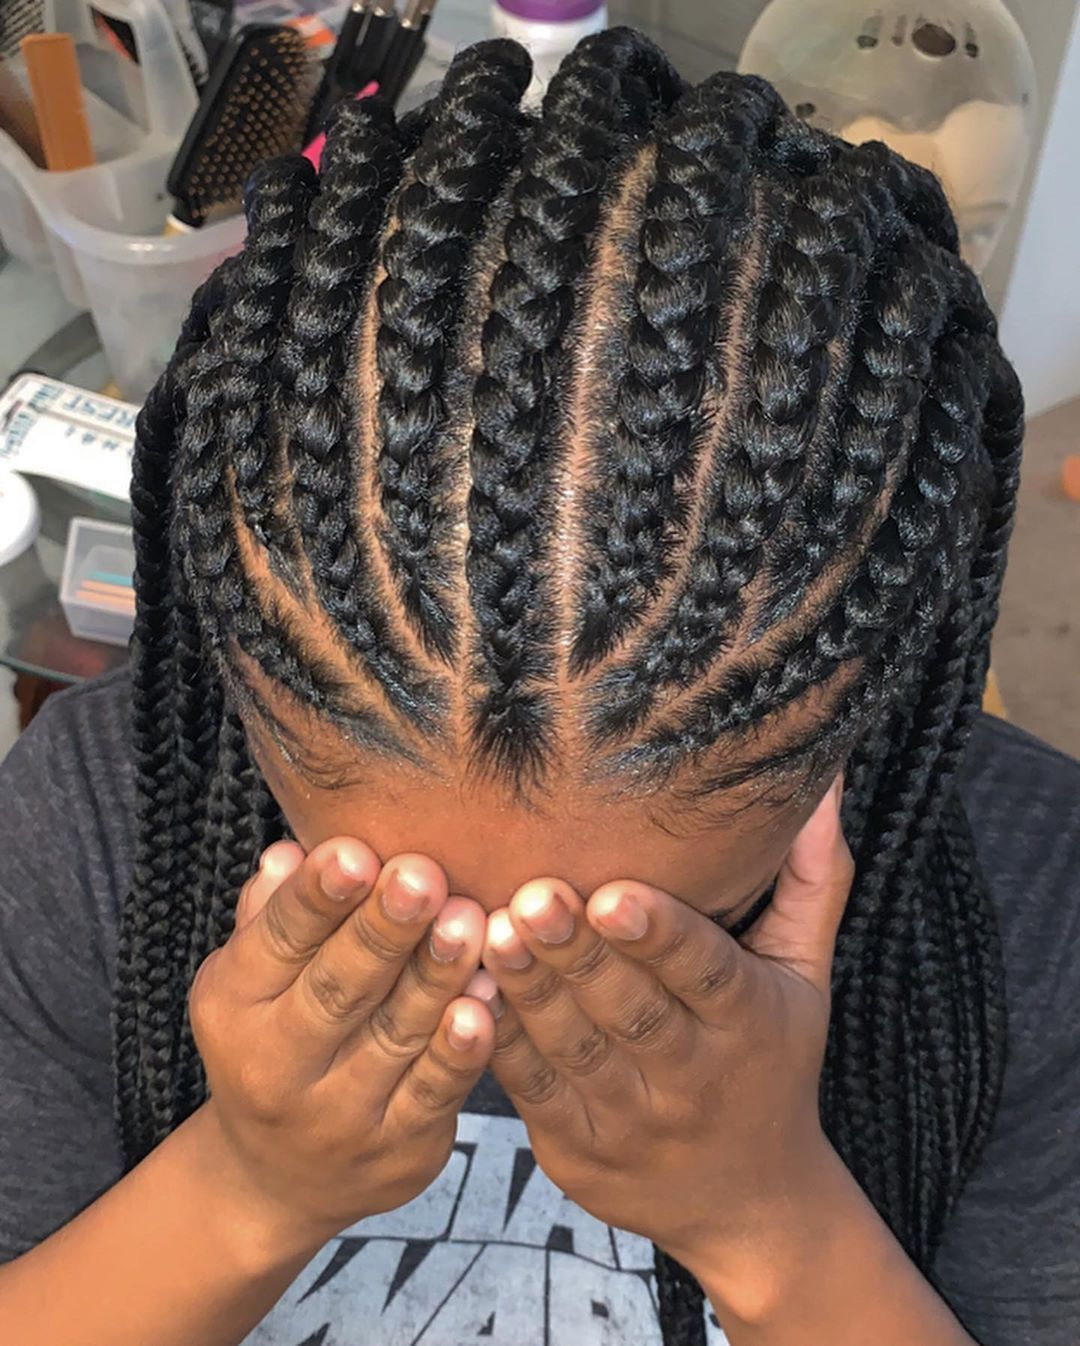 half up prom hair with twists #blackhair # fulani Braids with curls # fulani Braids prom